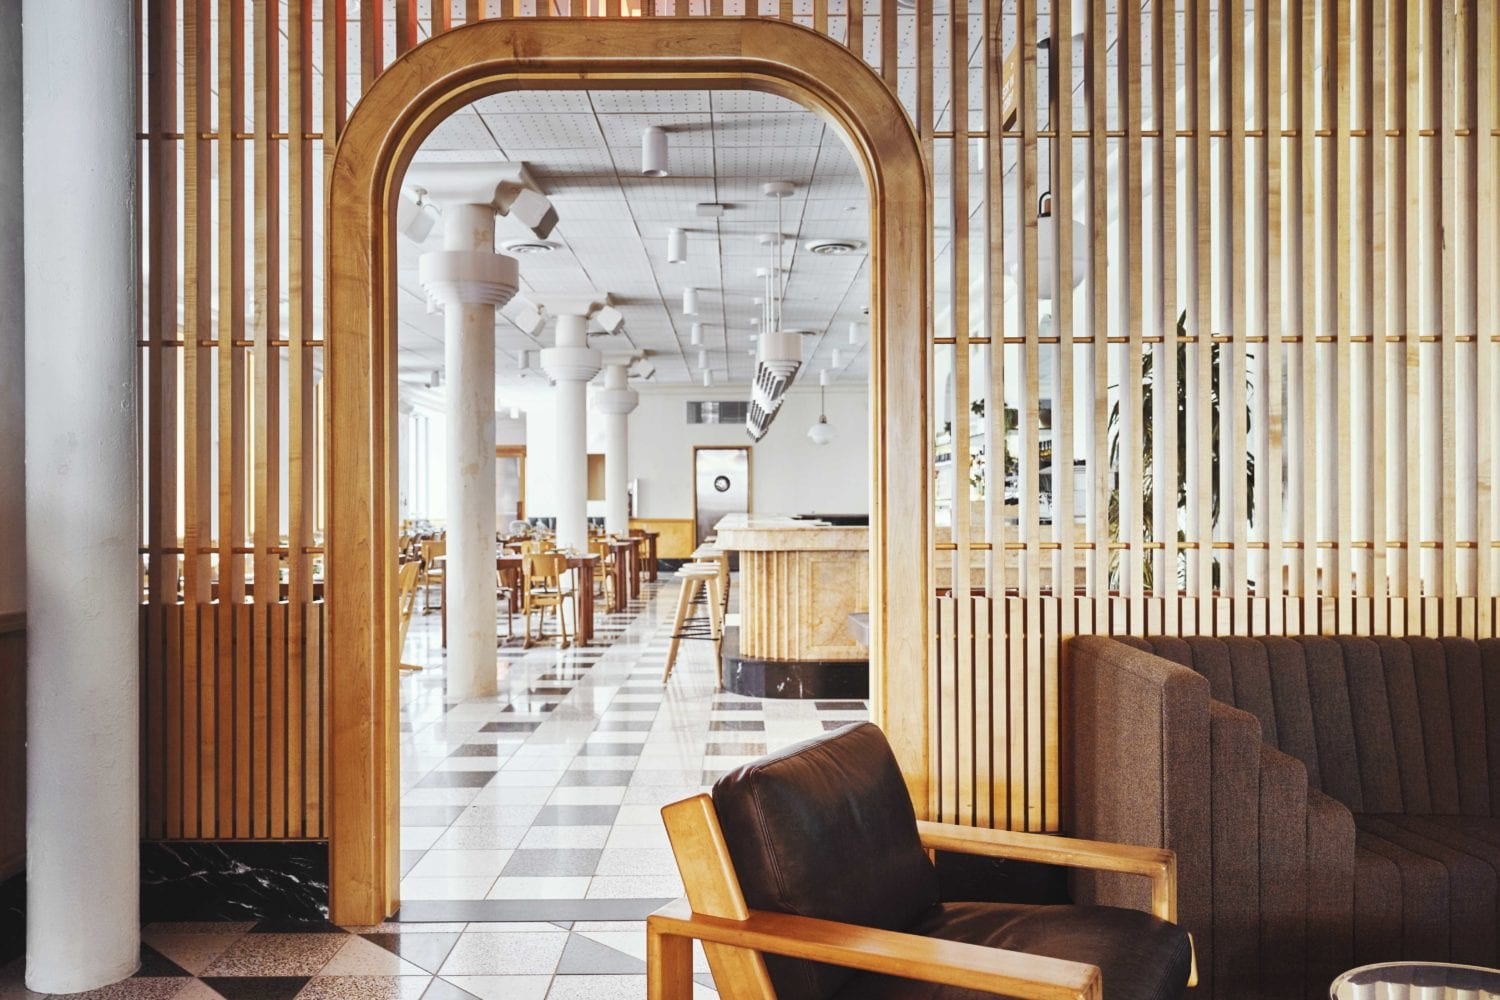 Sister City Hotel Opens New York | Yellowtrace